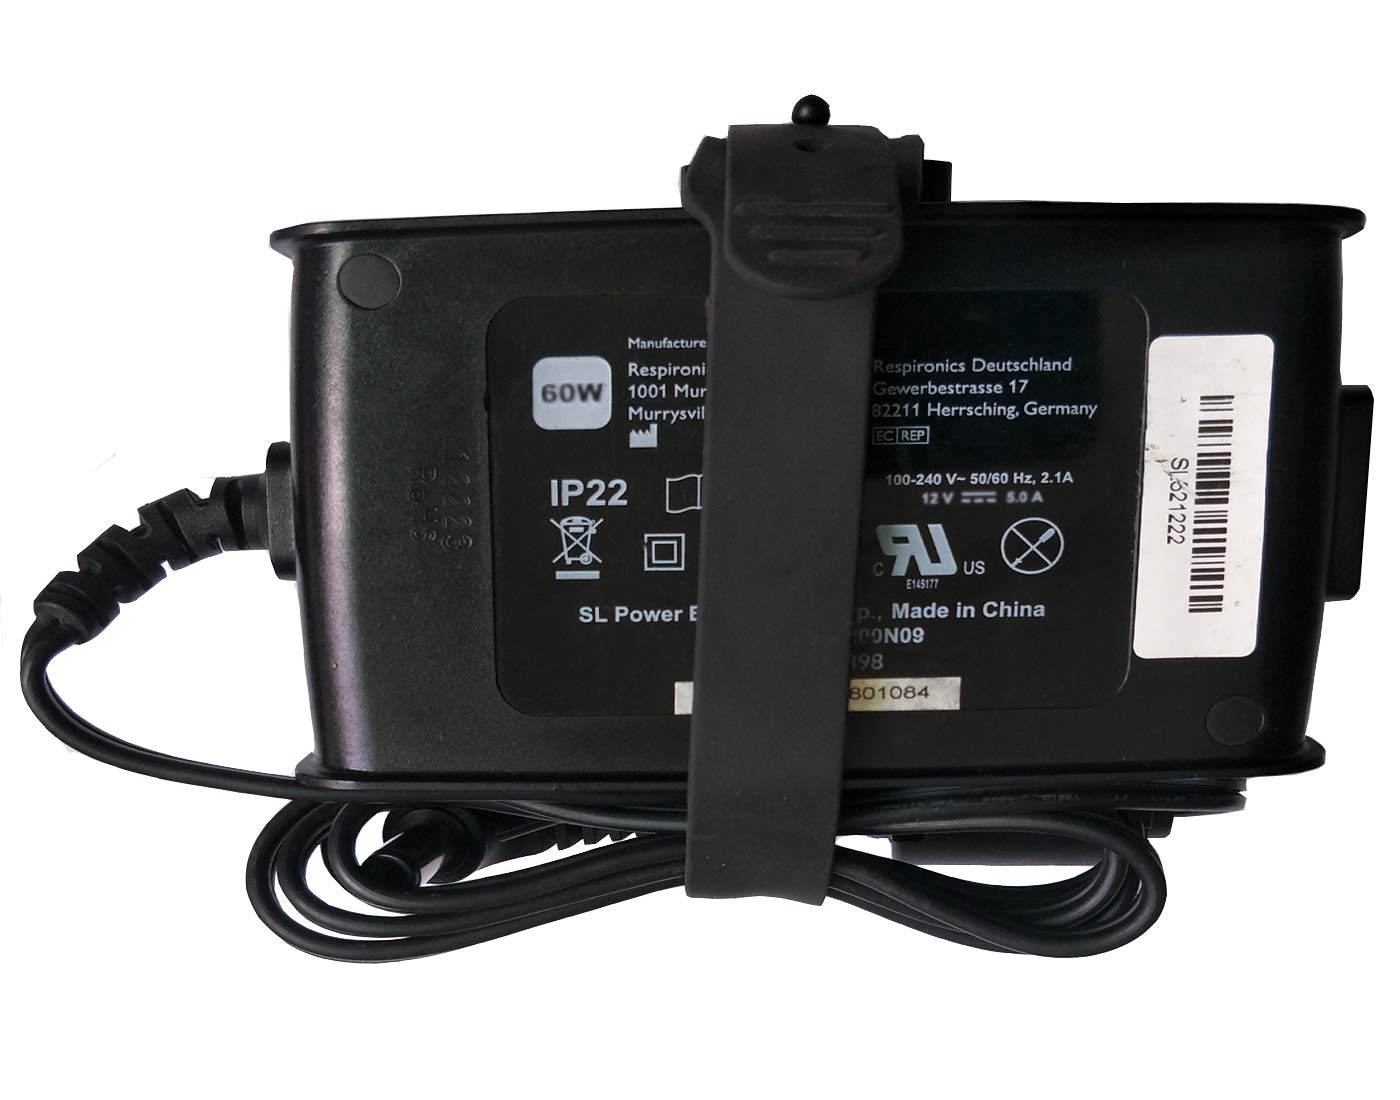 UpBright OEM 60W AC/DC Adapter for Philips Respironics PR REMstar C-Flex AA24750L-003 MW115RA1200N09 REF 1091398 System One 60 Series CPAP APAP BIPAP Pro DOM 460P humidifier IP22 ASTEC 12V 5.0A PSU